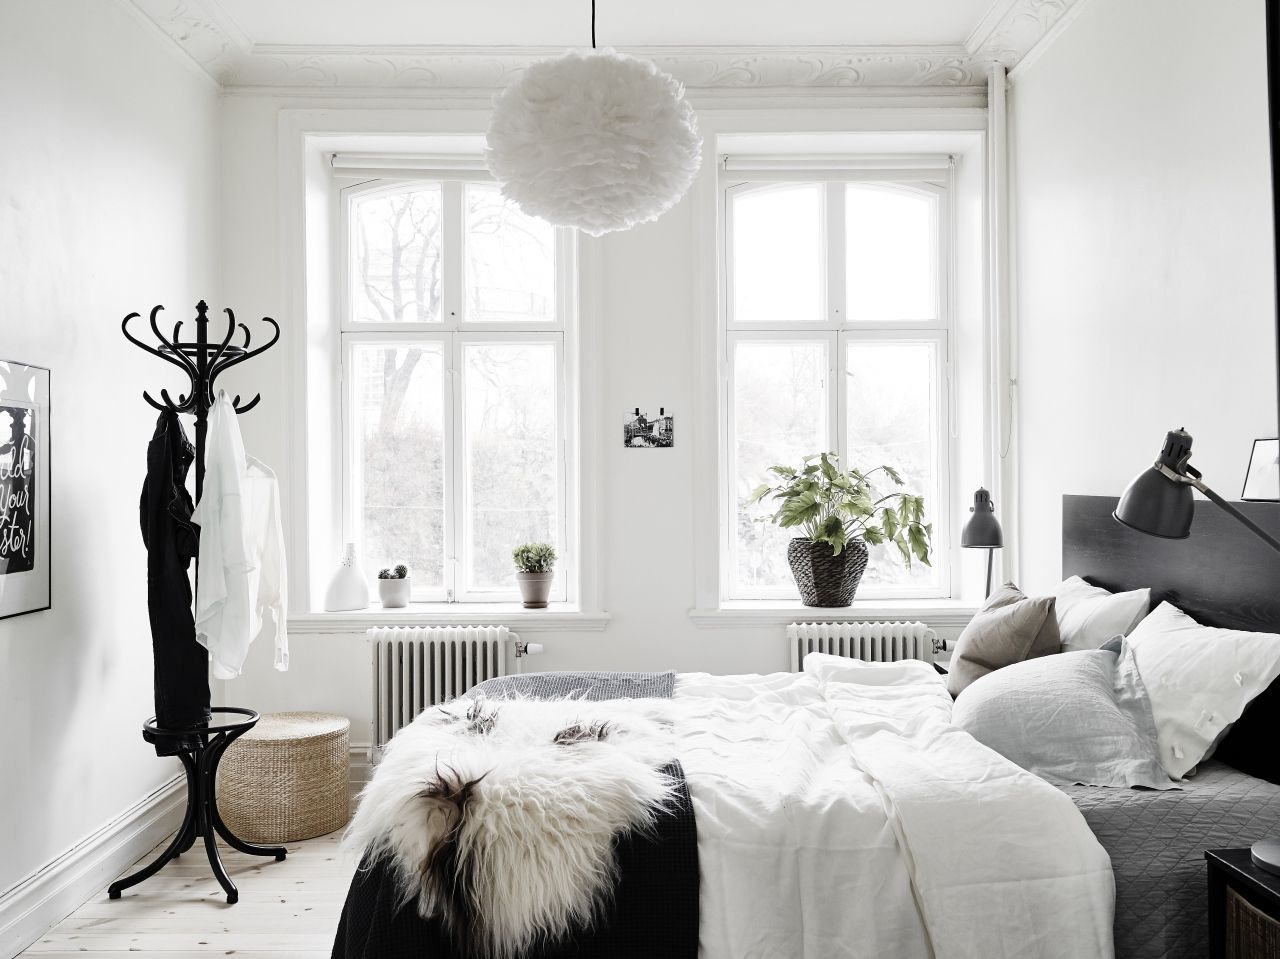 Small Black And White Bedroom Yep De Lamp Please Vita Eos Feather Lamp Fits Perfectly To